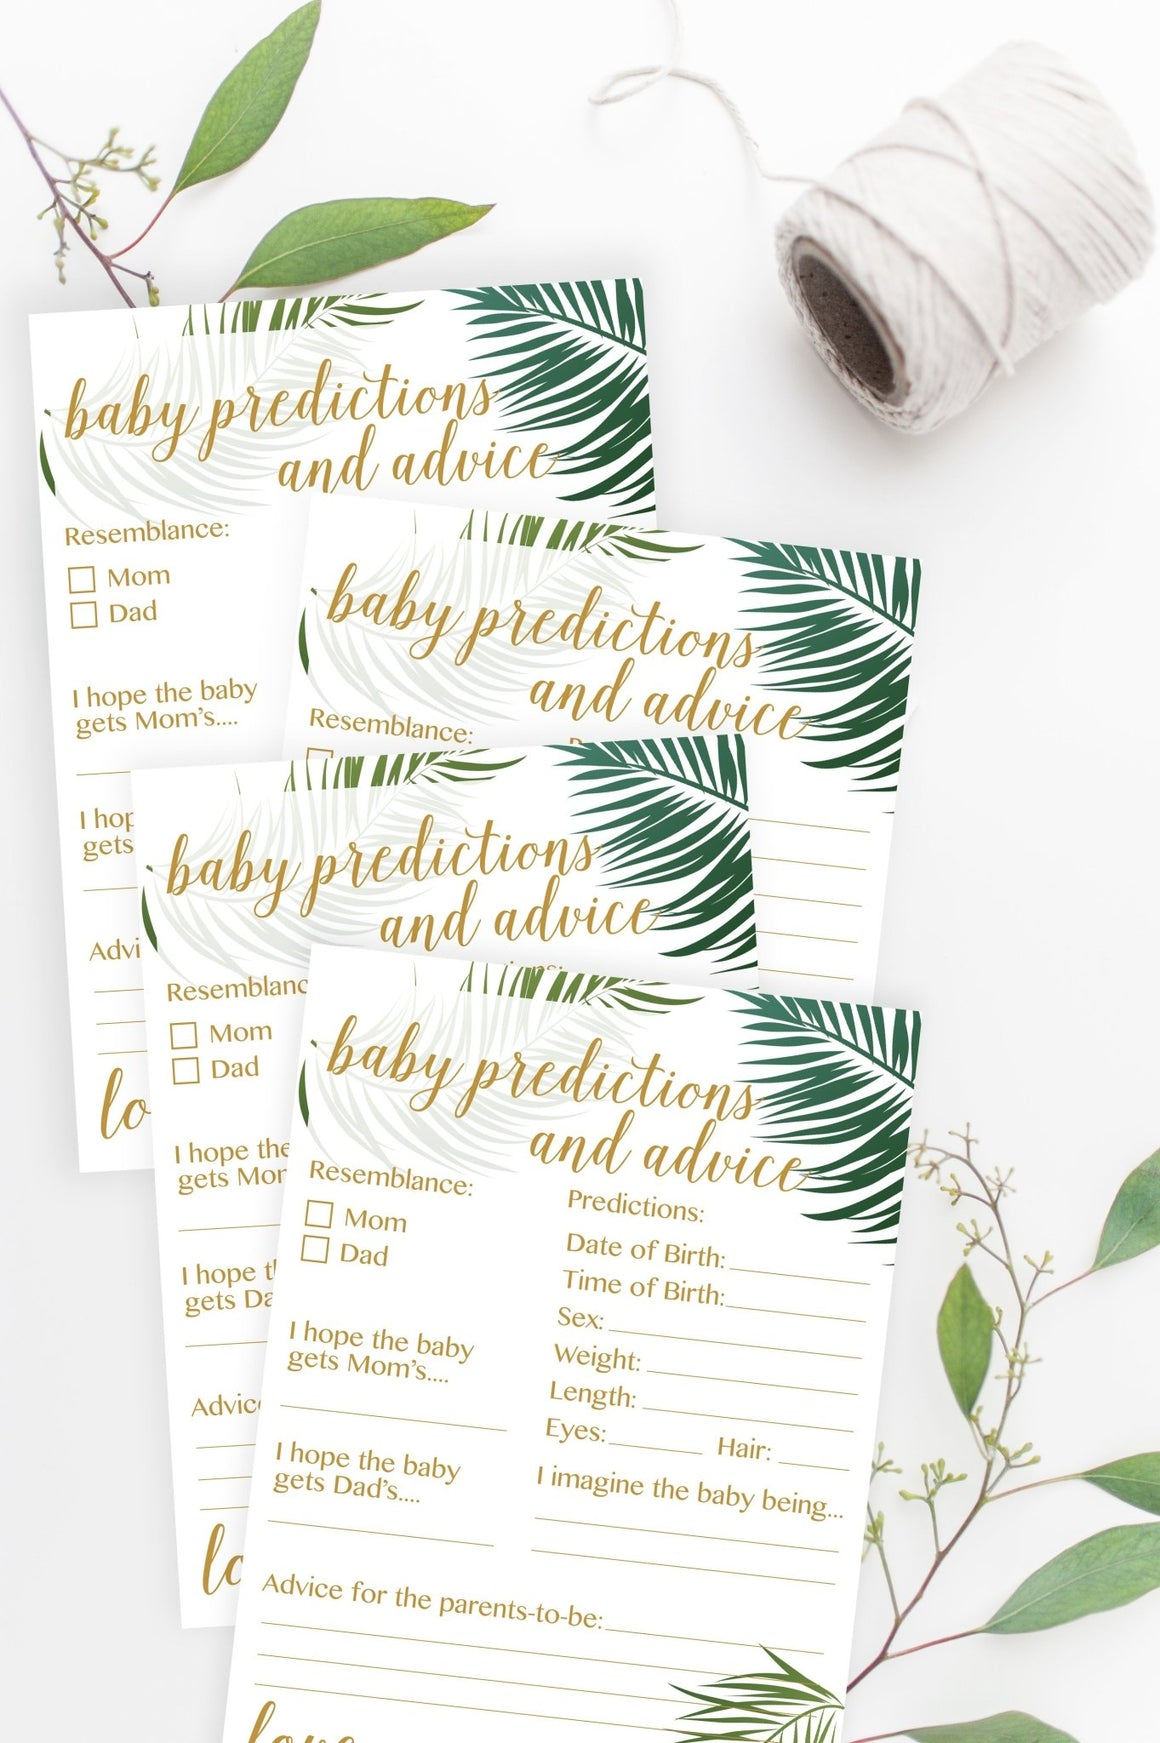 Baby Predictions and Advice (with gender prediction) - Tropical Printable - Pretty Collected